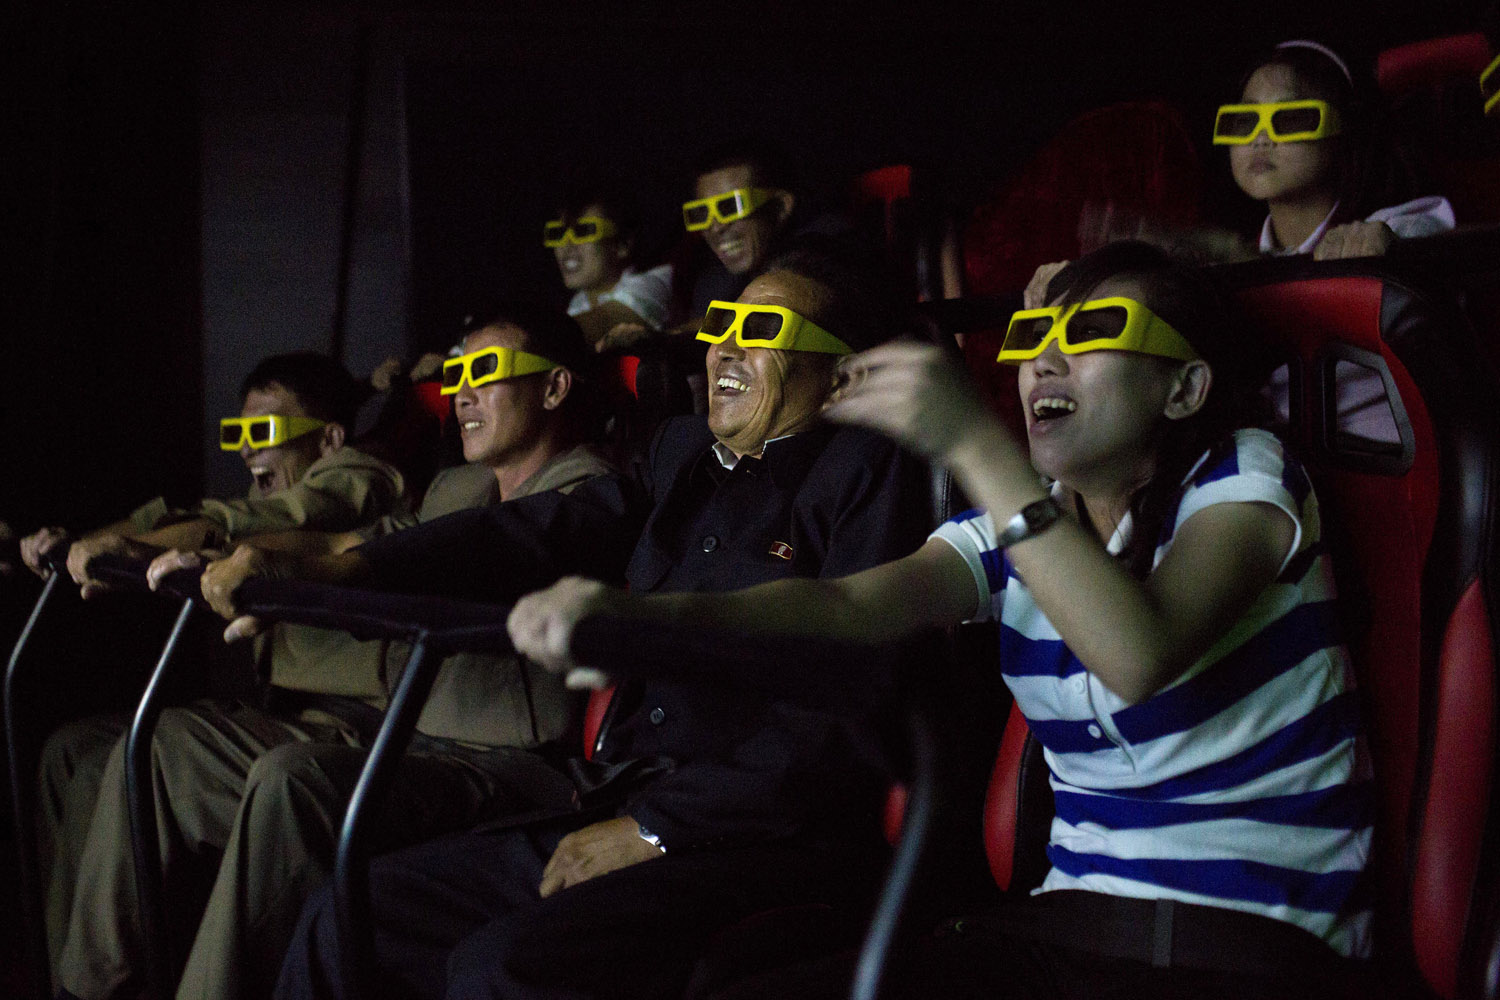 Sept. 22, 2013. North Koreans ride on an amusement park ride while watching a 3D movie at the Rungna People's Pleasure Park in Pyongyang.